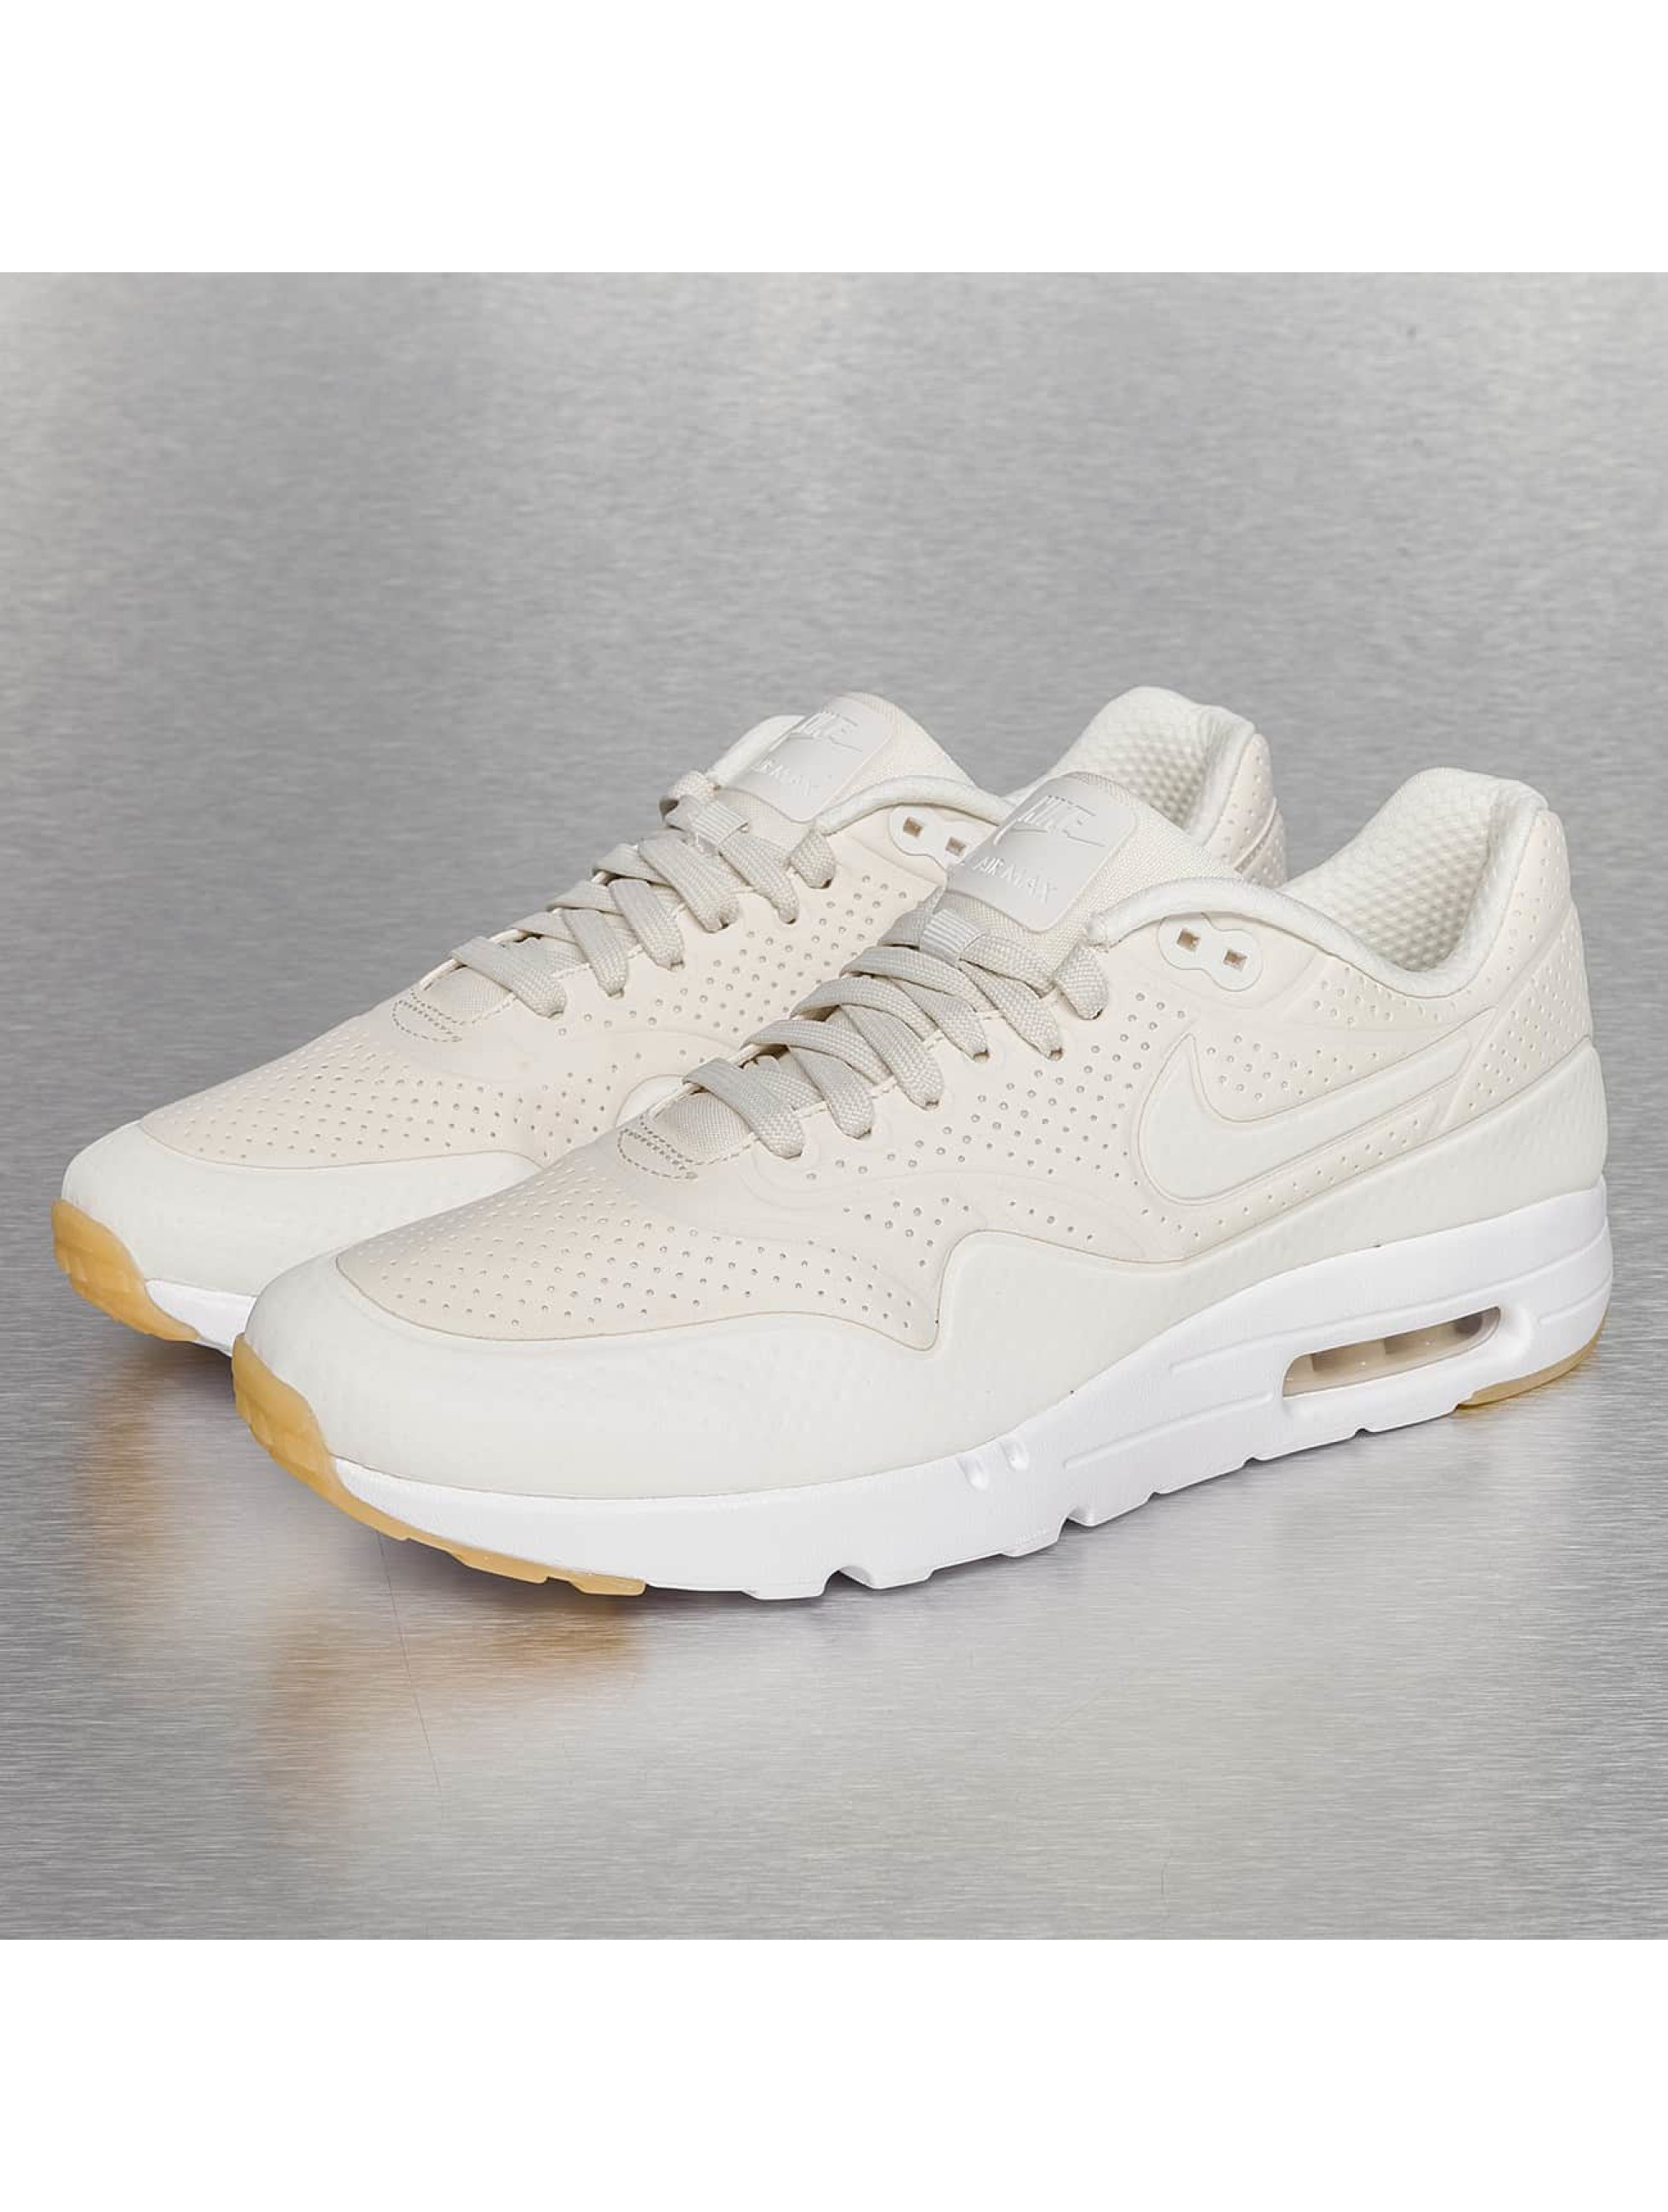 Sneaker Air Max 1 Ultra Moire in beige